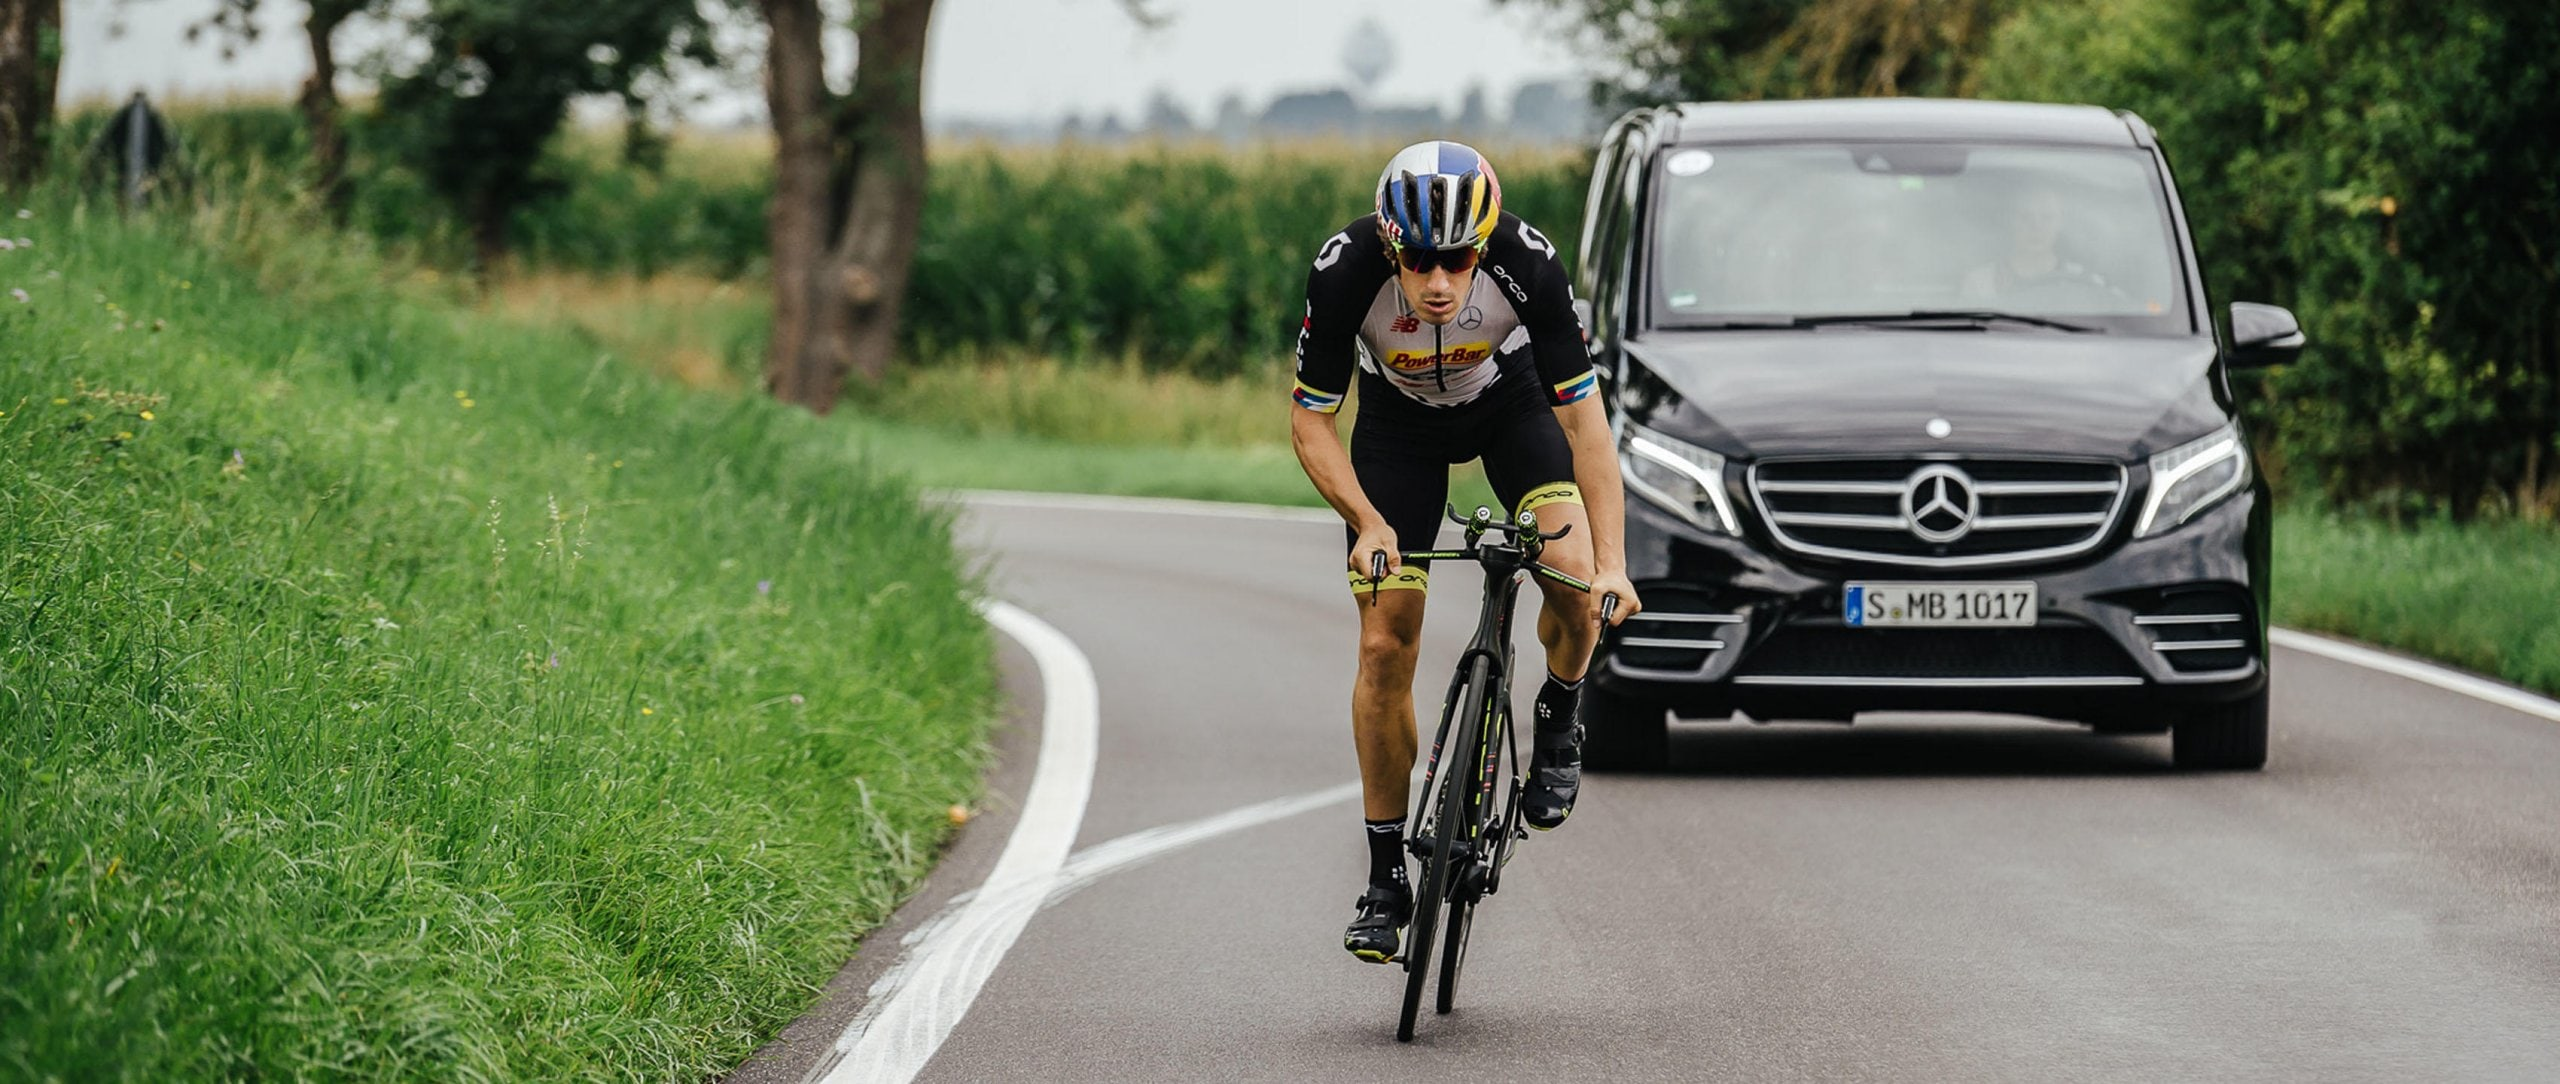 For years, Sebastian Kienle has been at the top of the international triathlon scene. The 33-year-old IRONMAN 2014 World Champion likes to train in his home in Baden-Württemberg, South Germany.